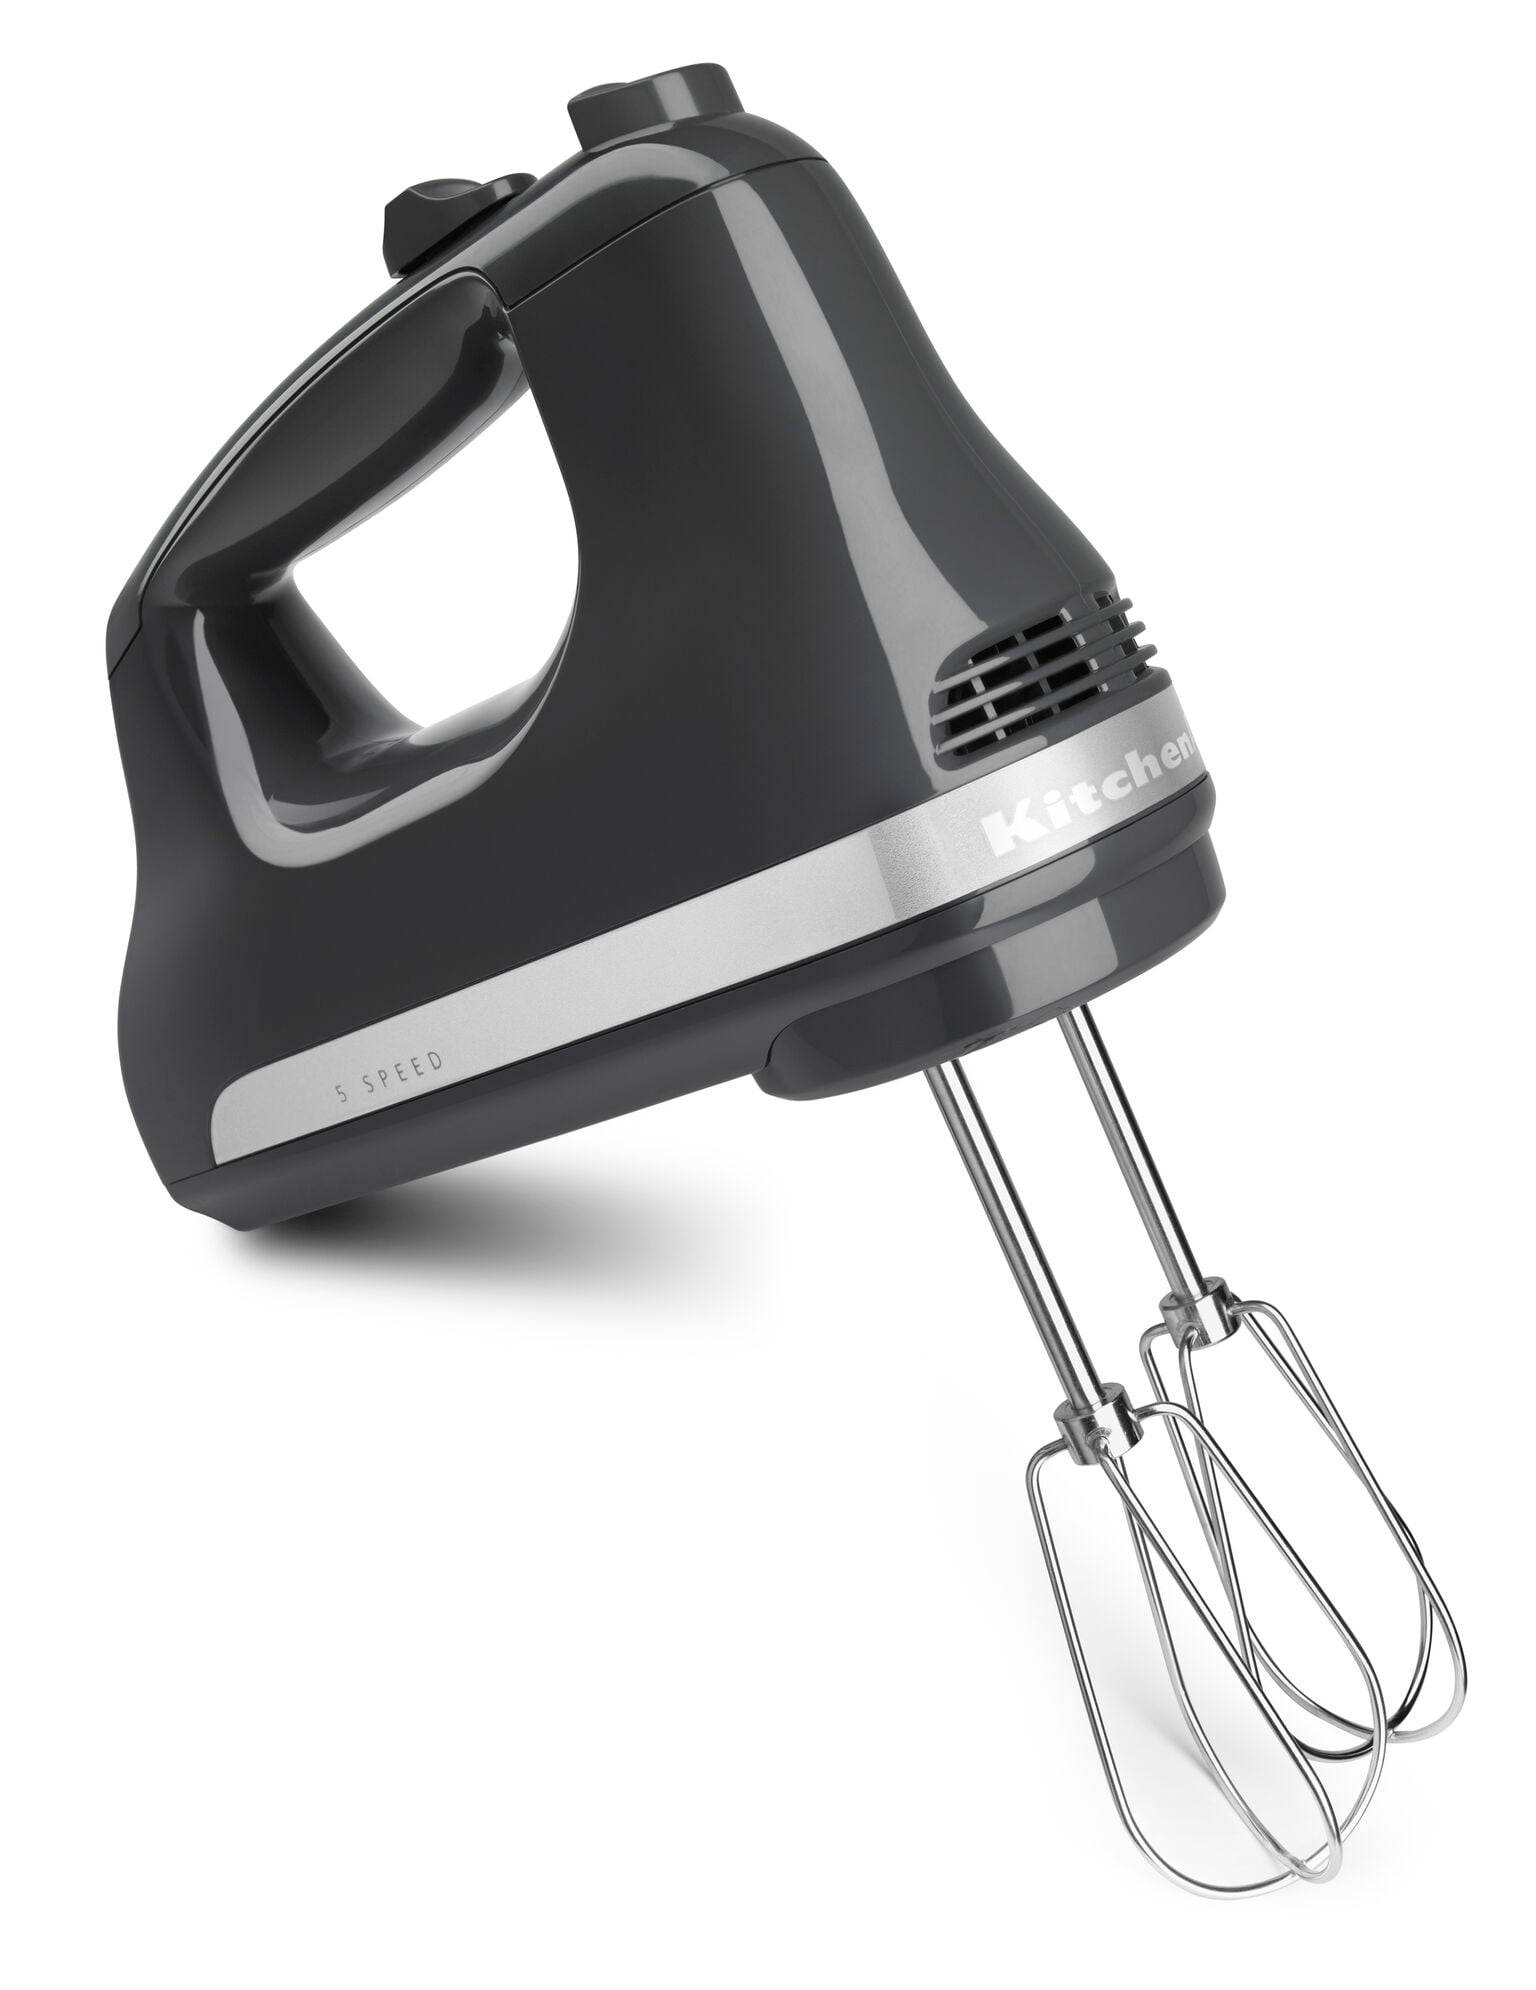 KitchenAid 5 Speed Ultra Power Hand Mixer, Tempest Grey